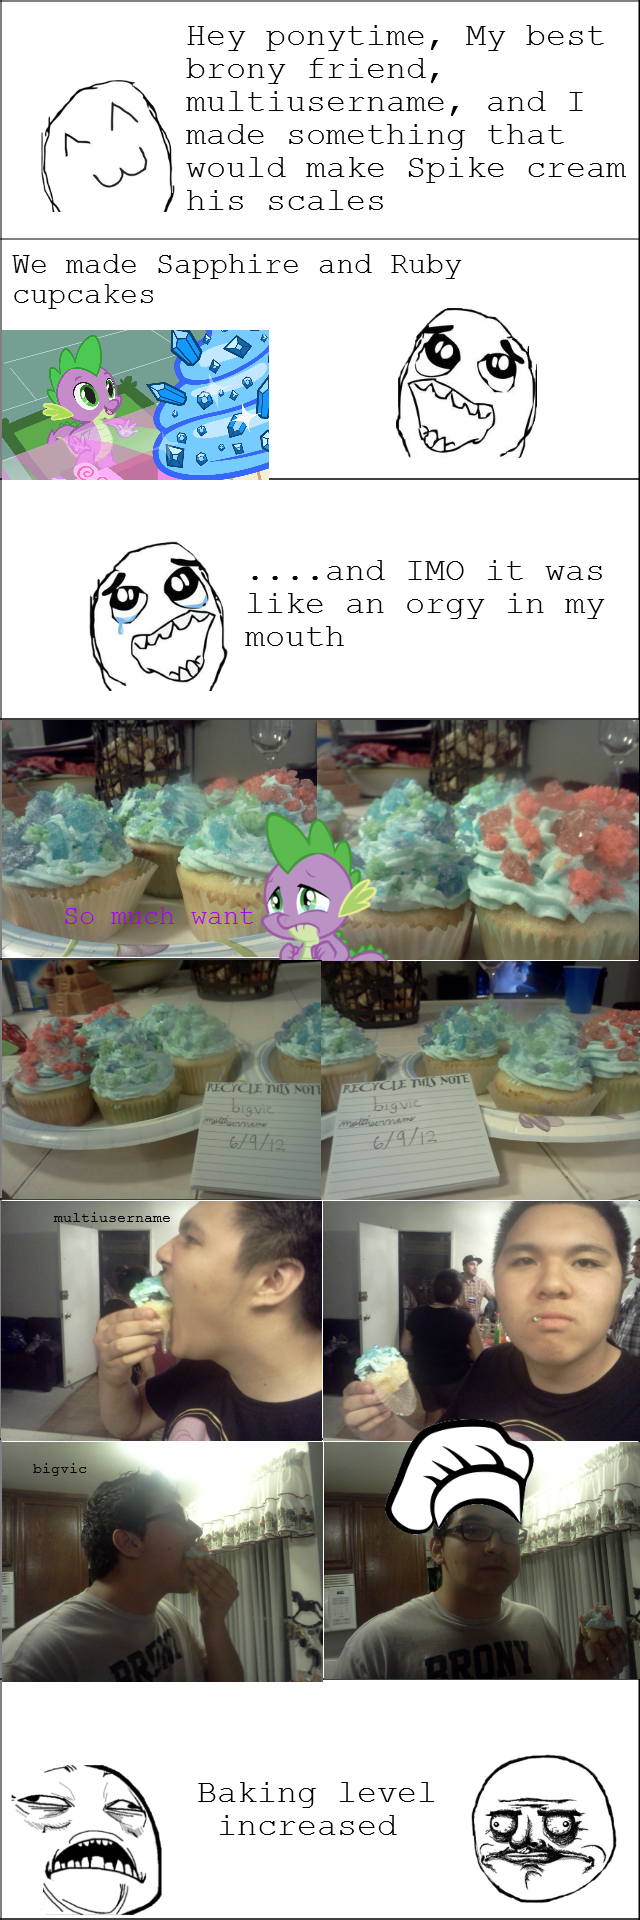 Brony Baking. Major dedz to multiusername, even though he almost up the recipe twice If this does well we will probably make more.. Not bad, not bad. But I still prefer rainbow flavored cupcakes myself.